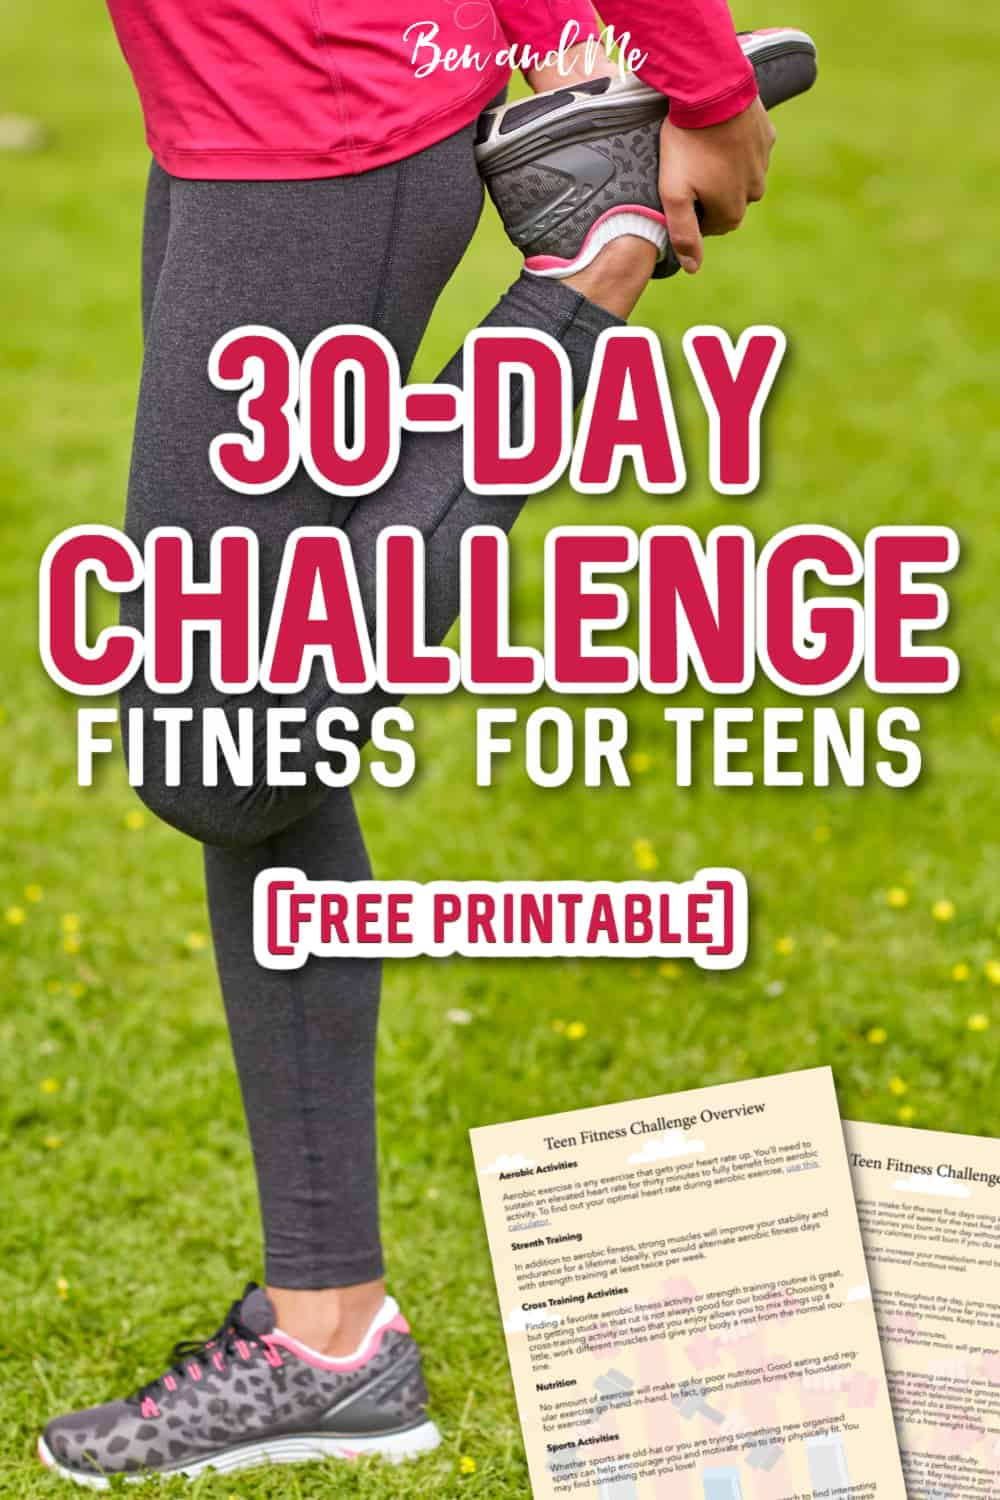 Our teen fitness challenge will motivate, inspire and teach your teenager about personal fitness accountability and intrinsic rewards. #30DayChallenge #teenfitness #fitnesschallenge